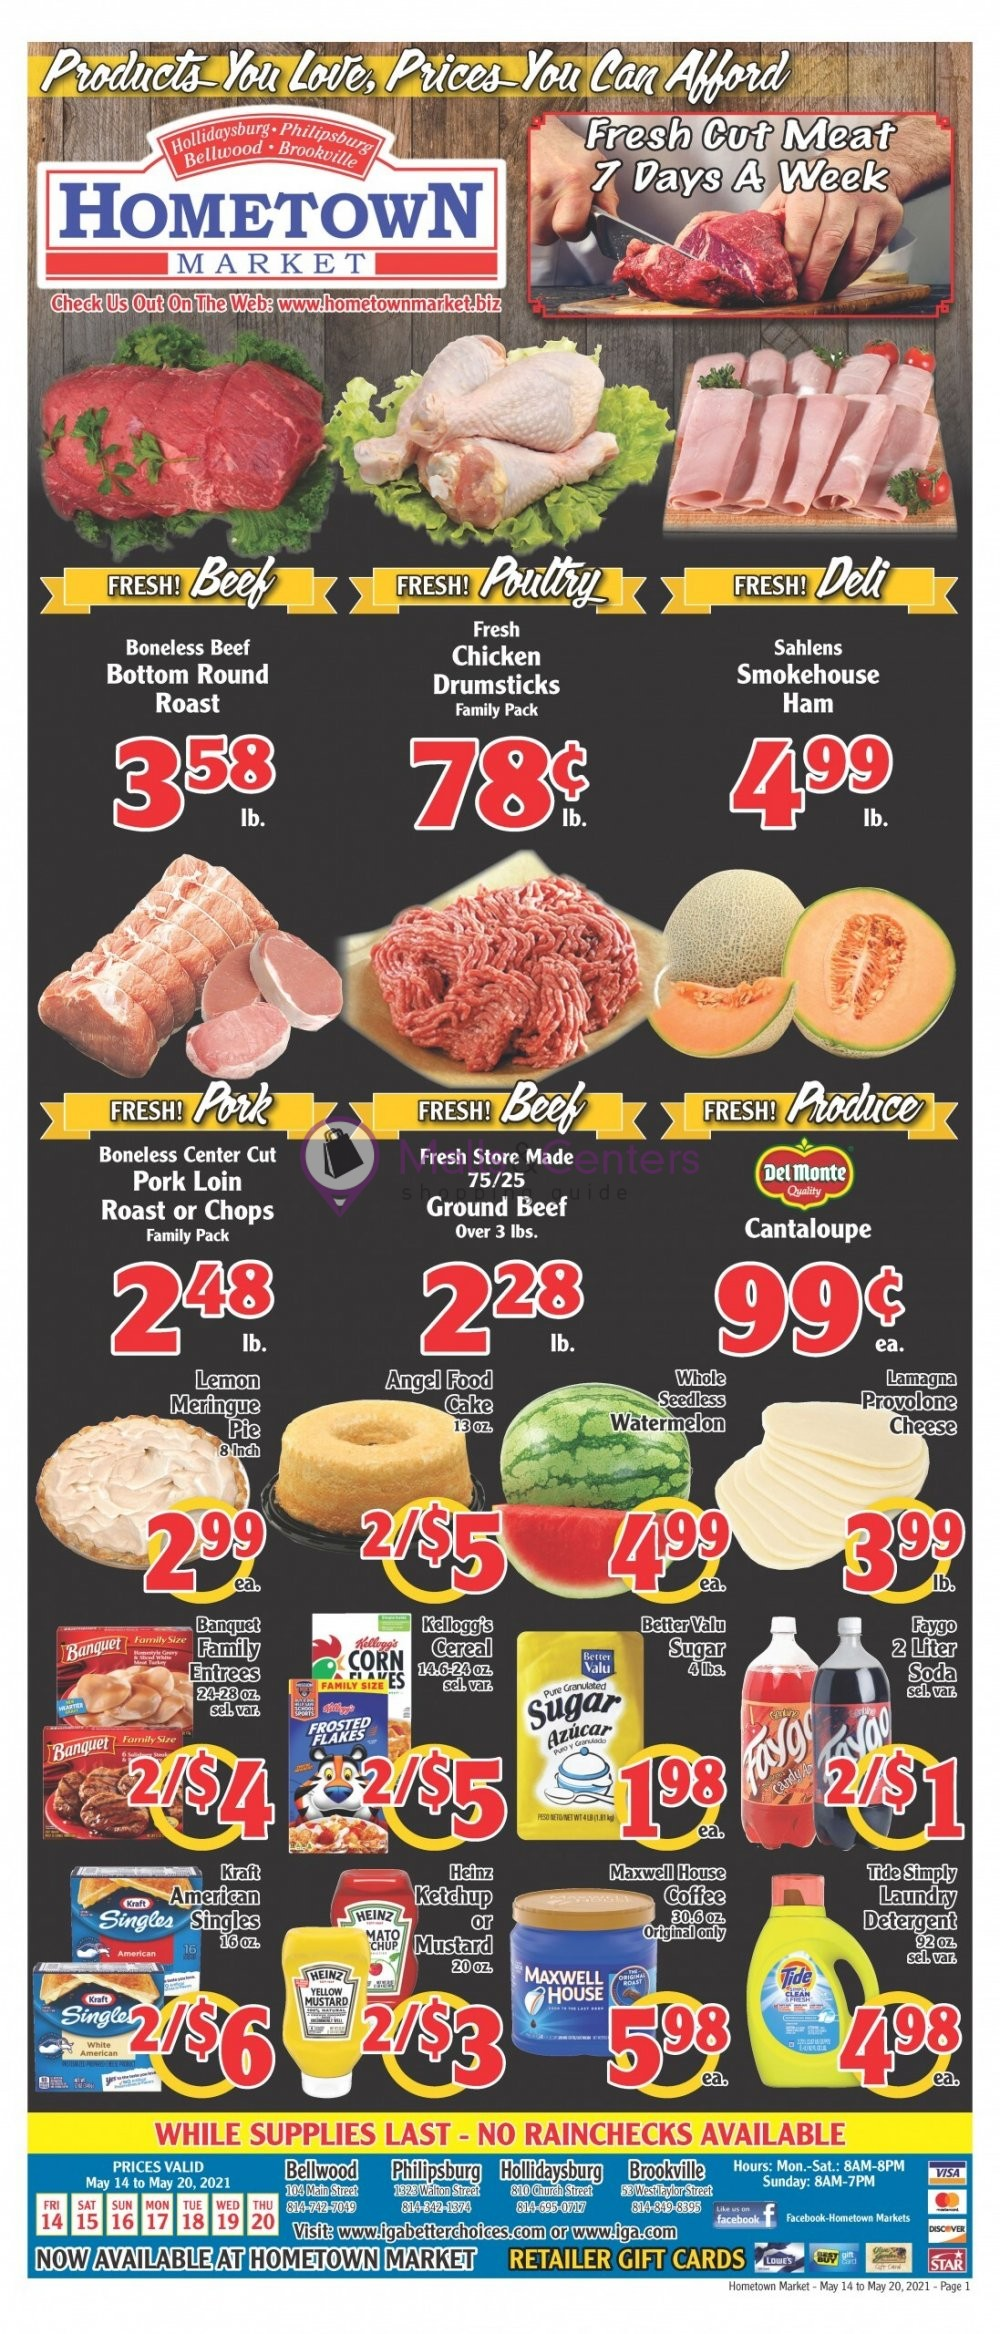 weekly ads Hometown Market - page 1 - mallscenters.com